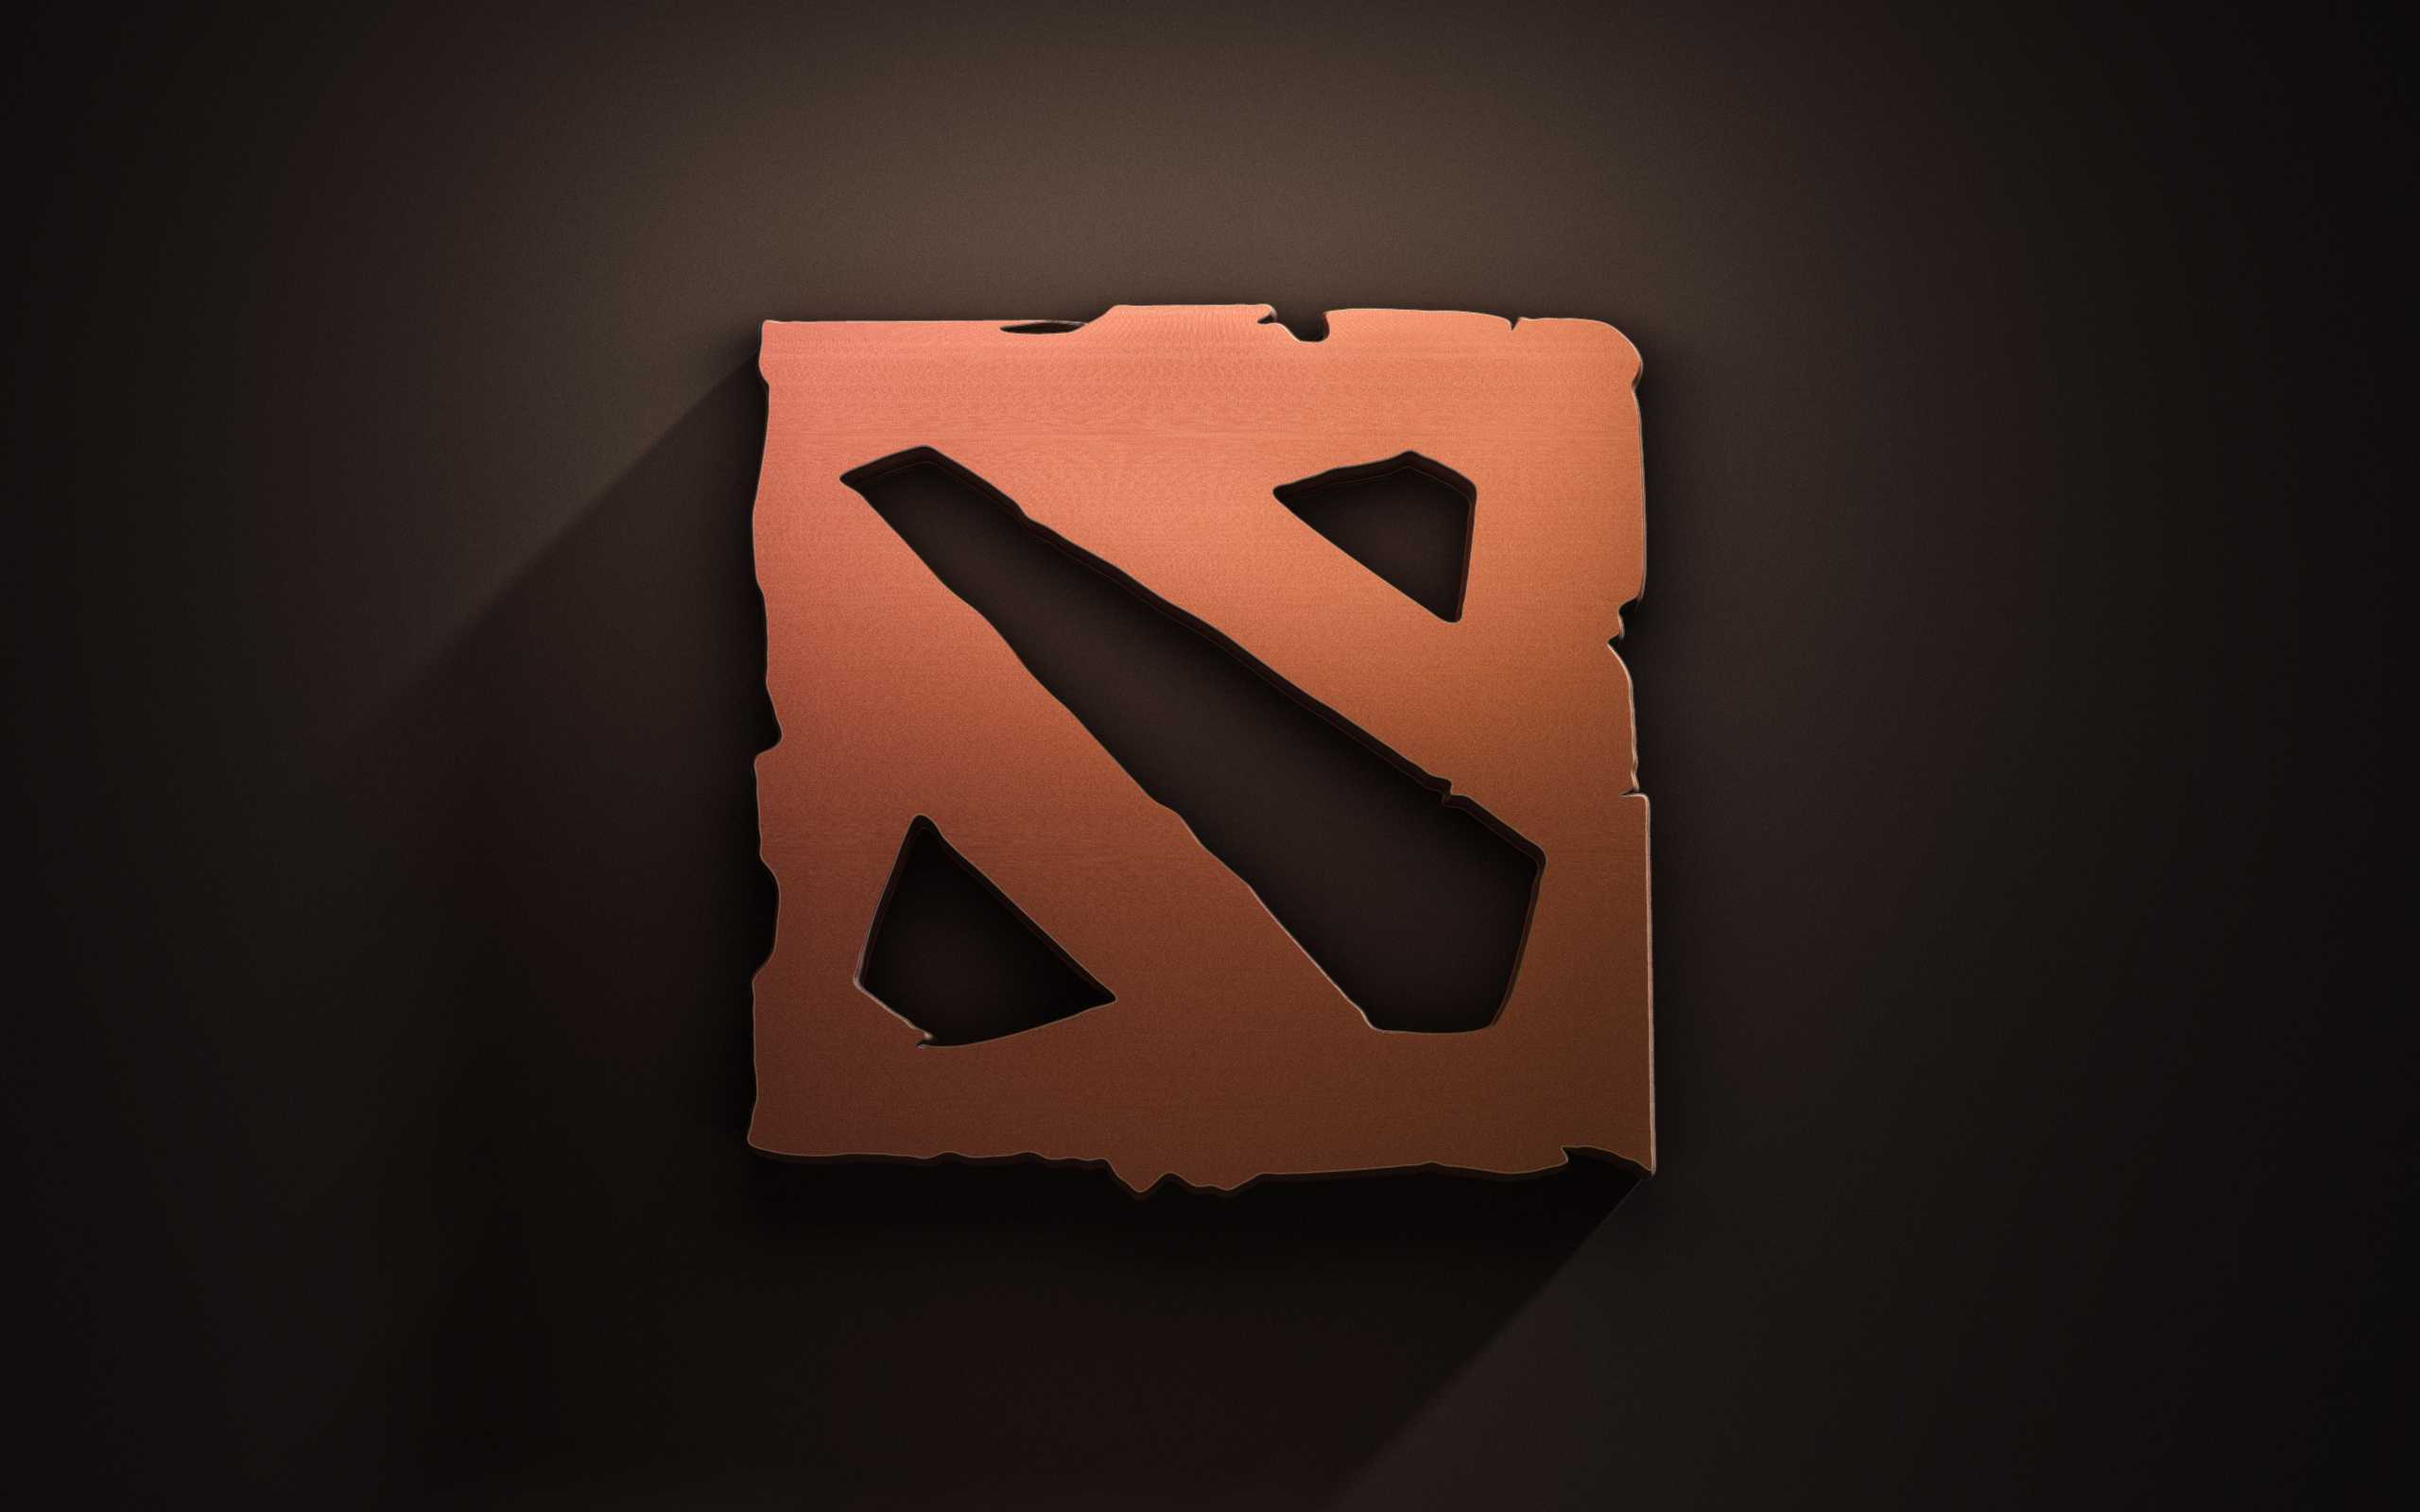 This is a very cool 3D Dota 2 wallpaper that I have found on the 2560x1600